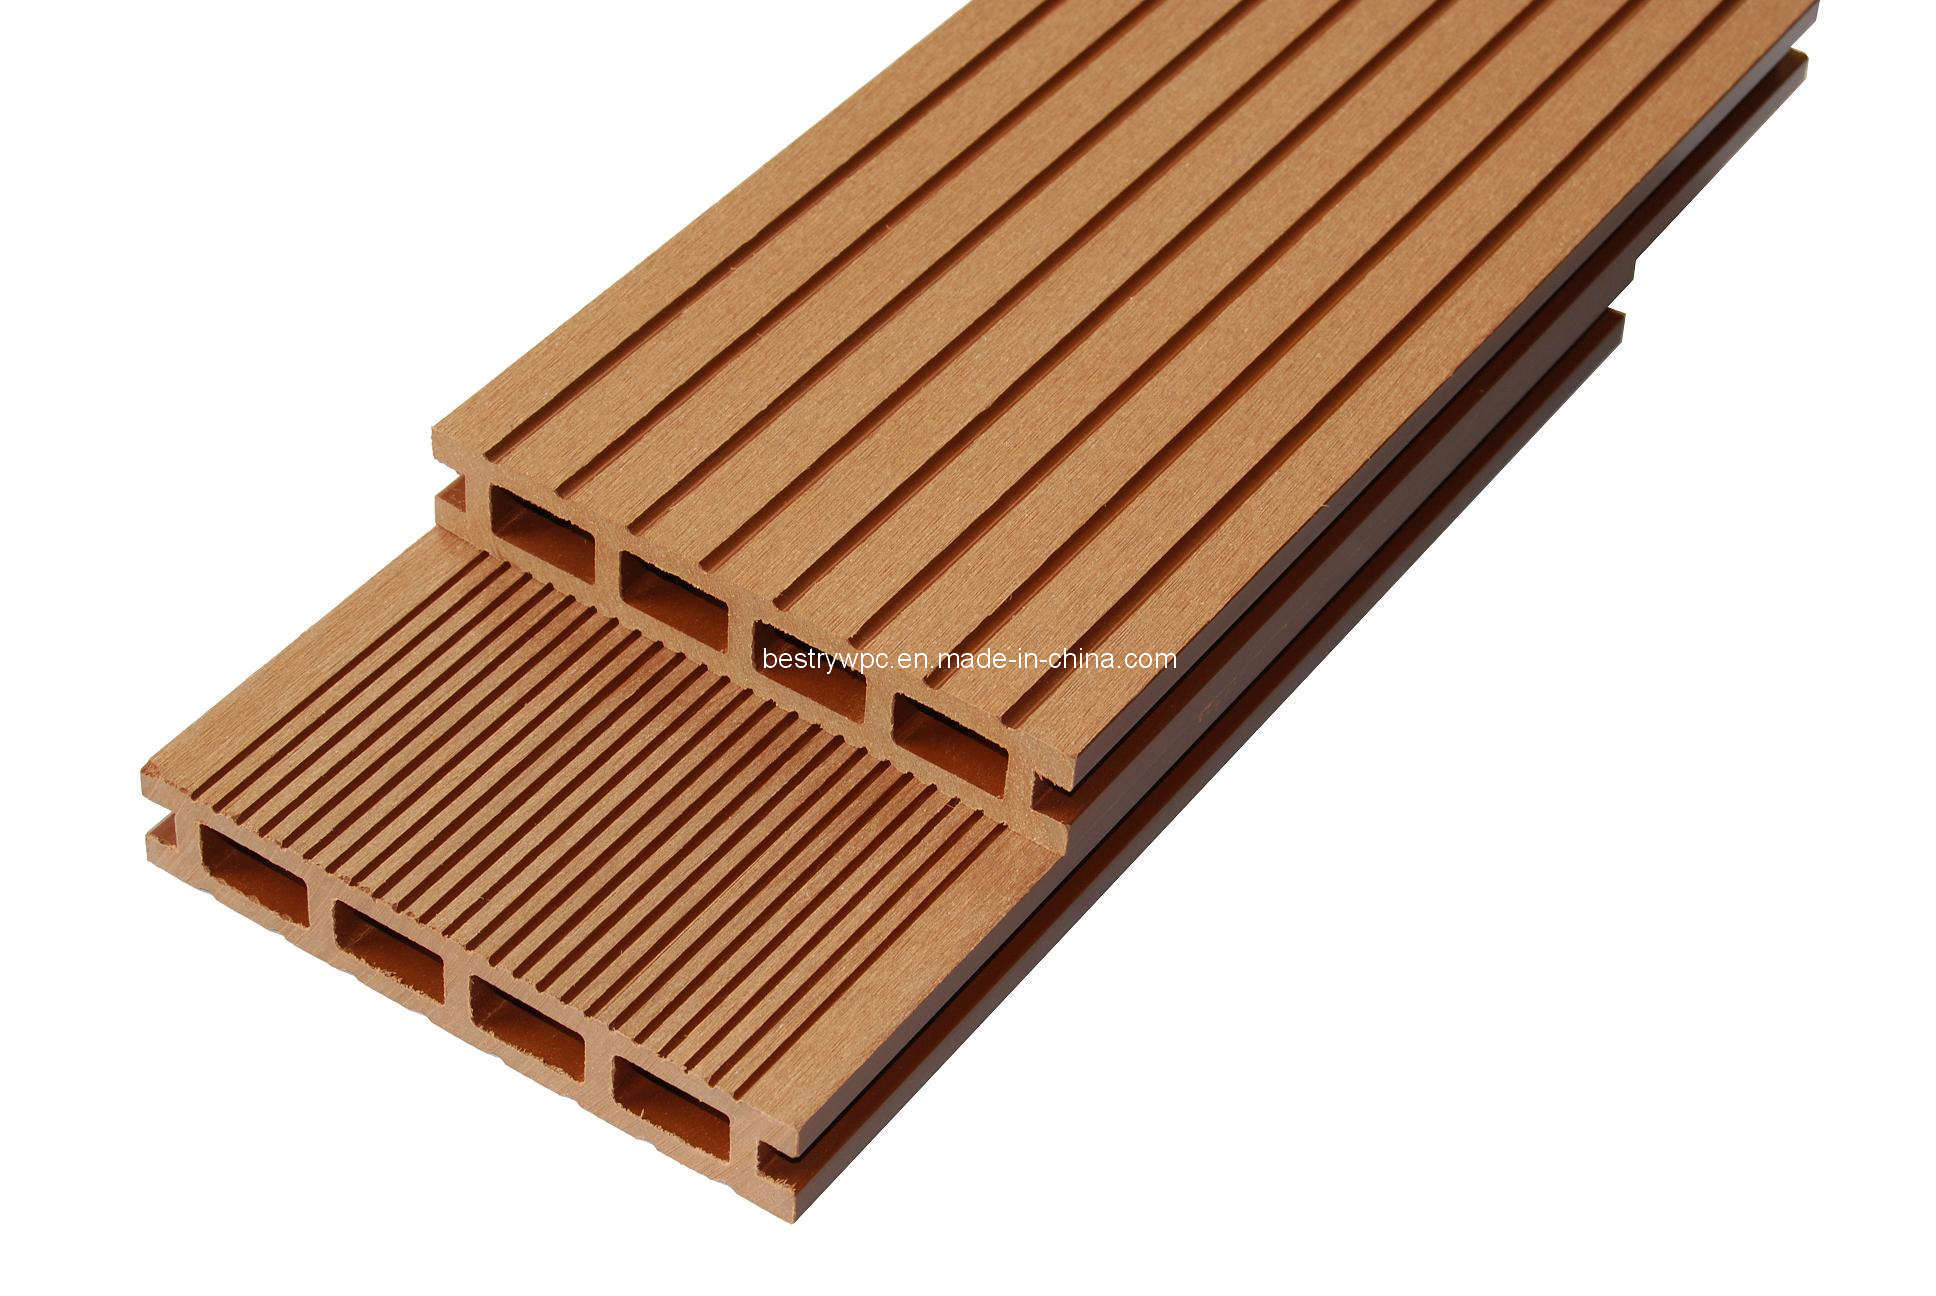 China Wood Plastic Composite Floorwpc Decking Bd140h25b